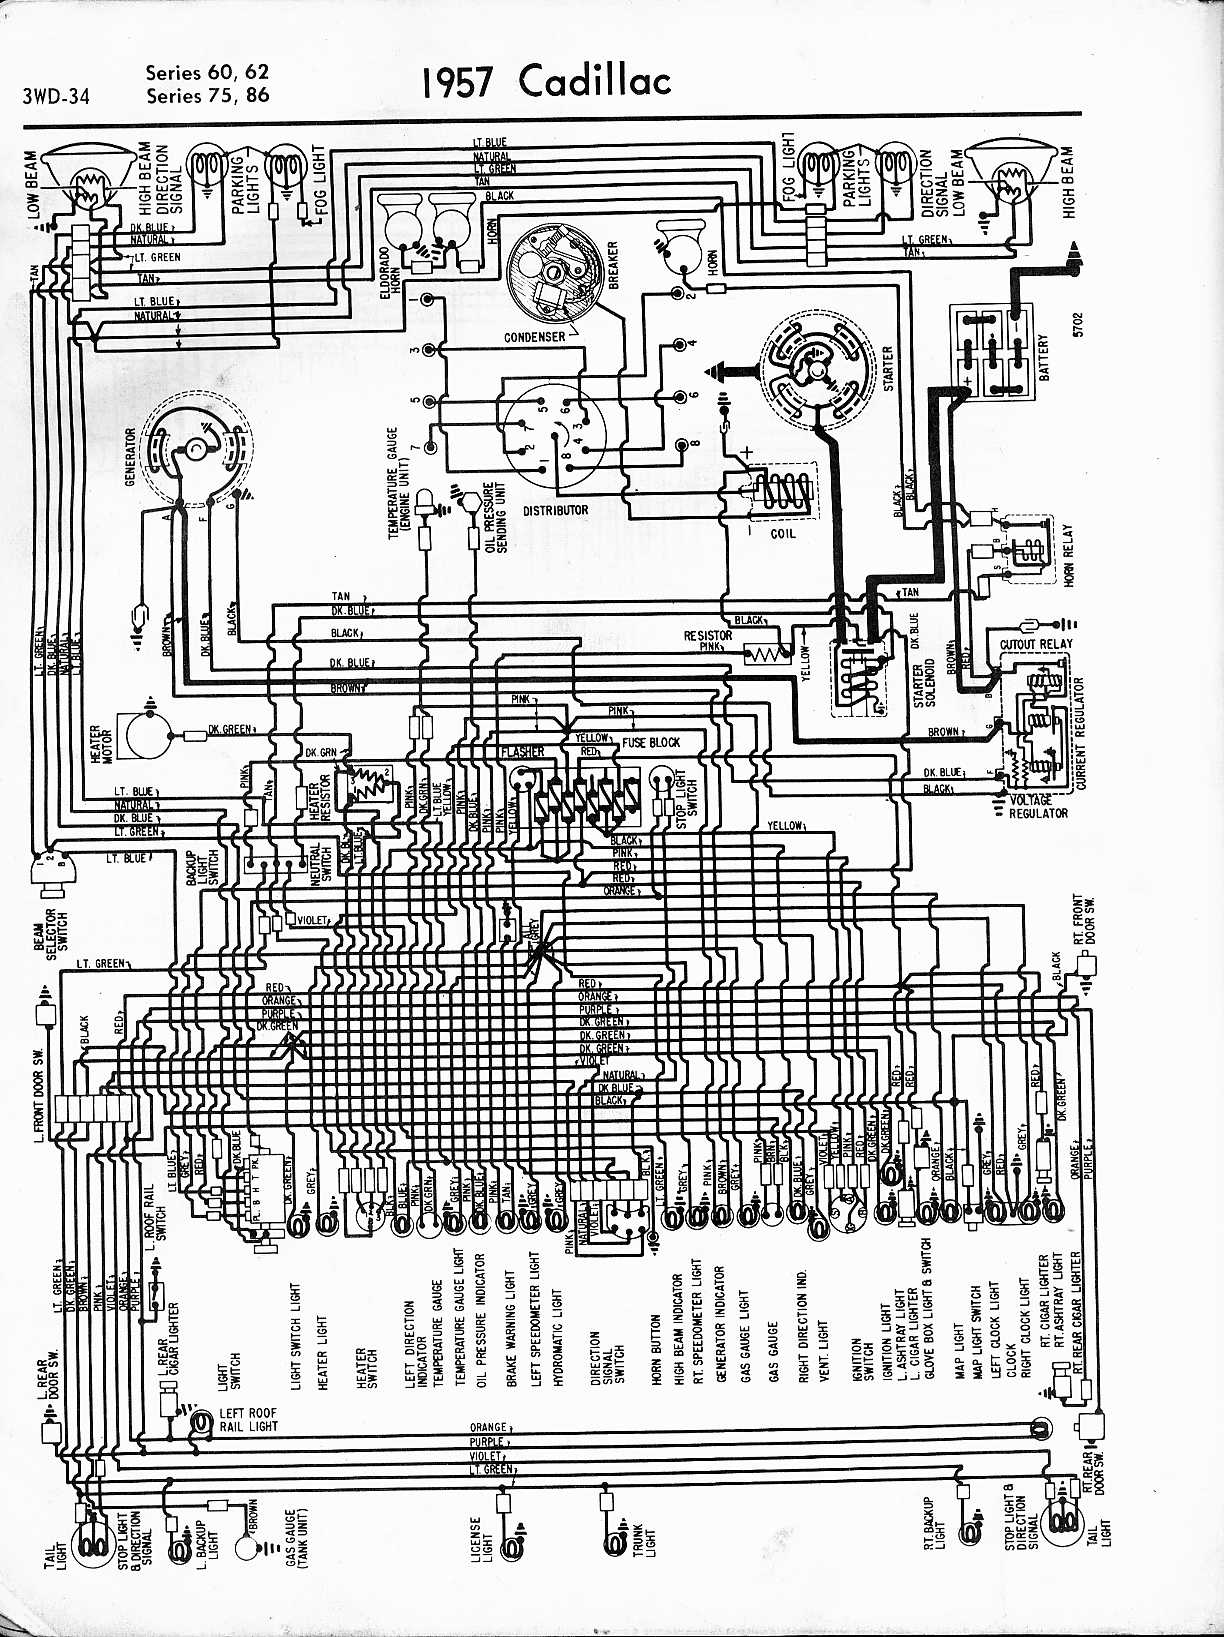 cadillac wiring diagrams 1957 1965 Jaguar XJ8 Fuse Box Location 1965 cadillac deville fuse box location